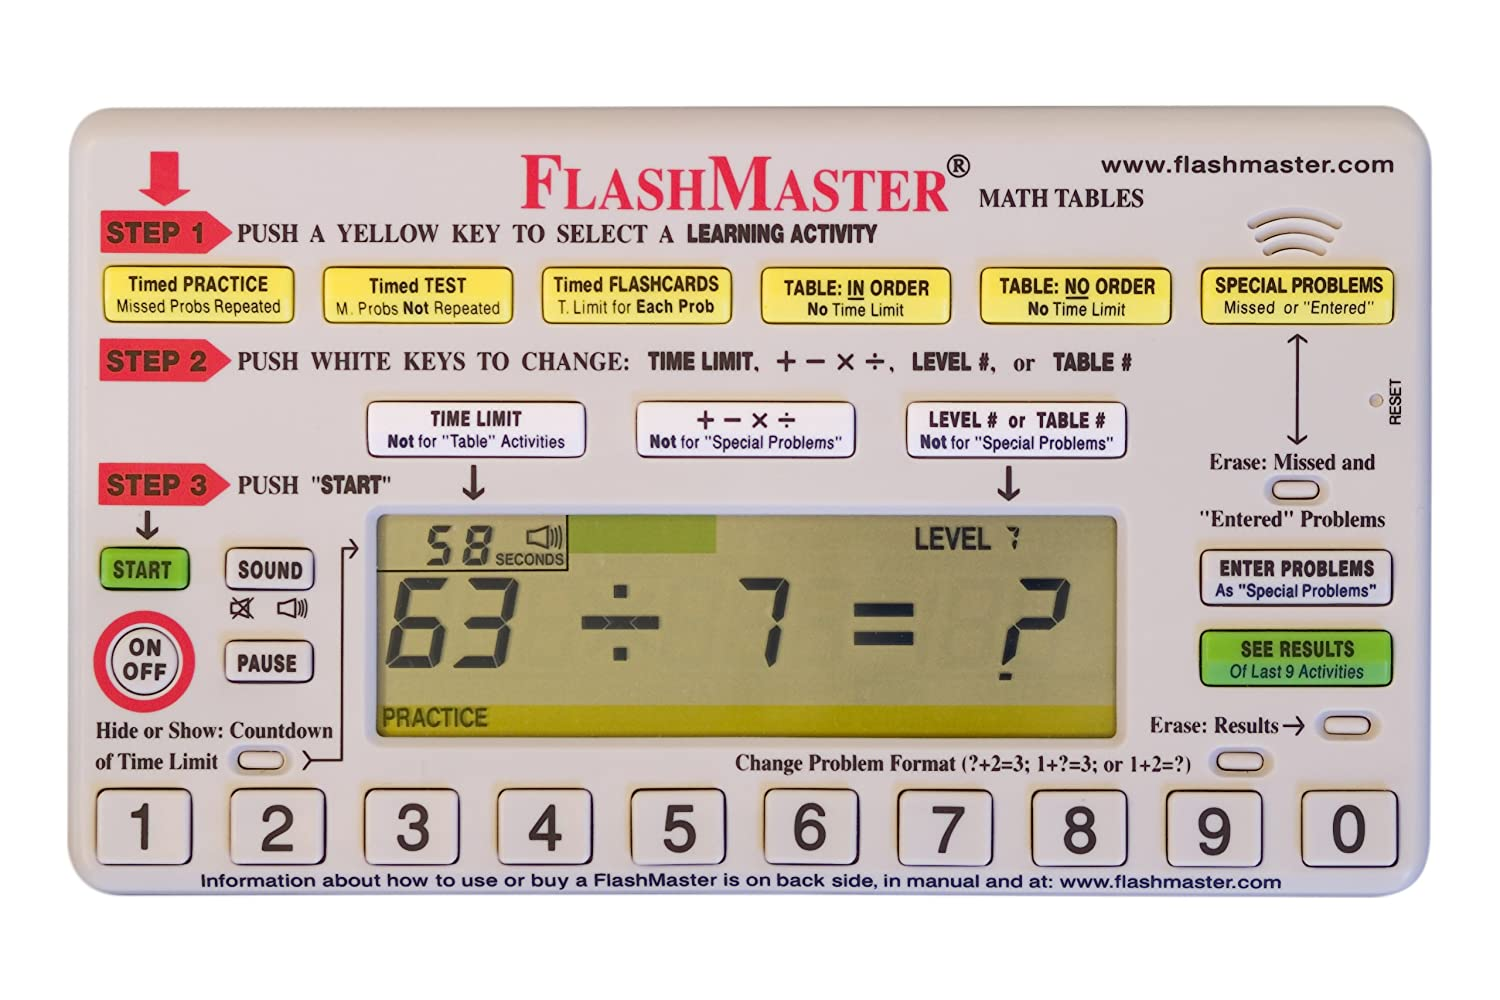 Flashmaster Handheld Computer for Mastering All Basic Math Facts that Makes Flashcards Obsolete MiToo